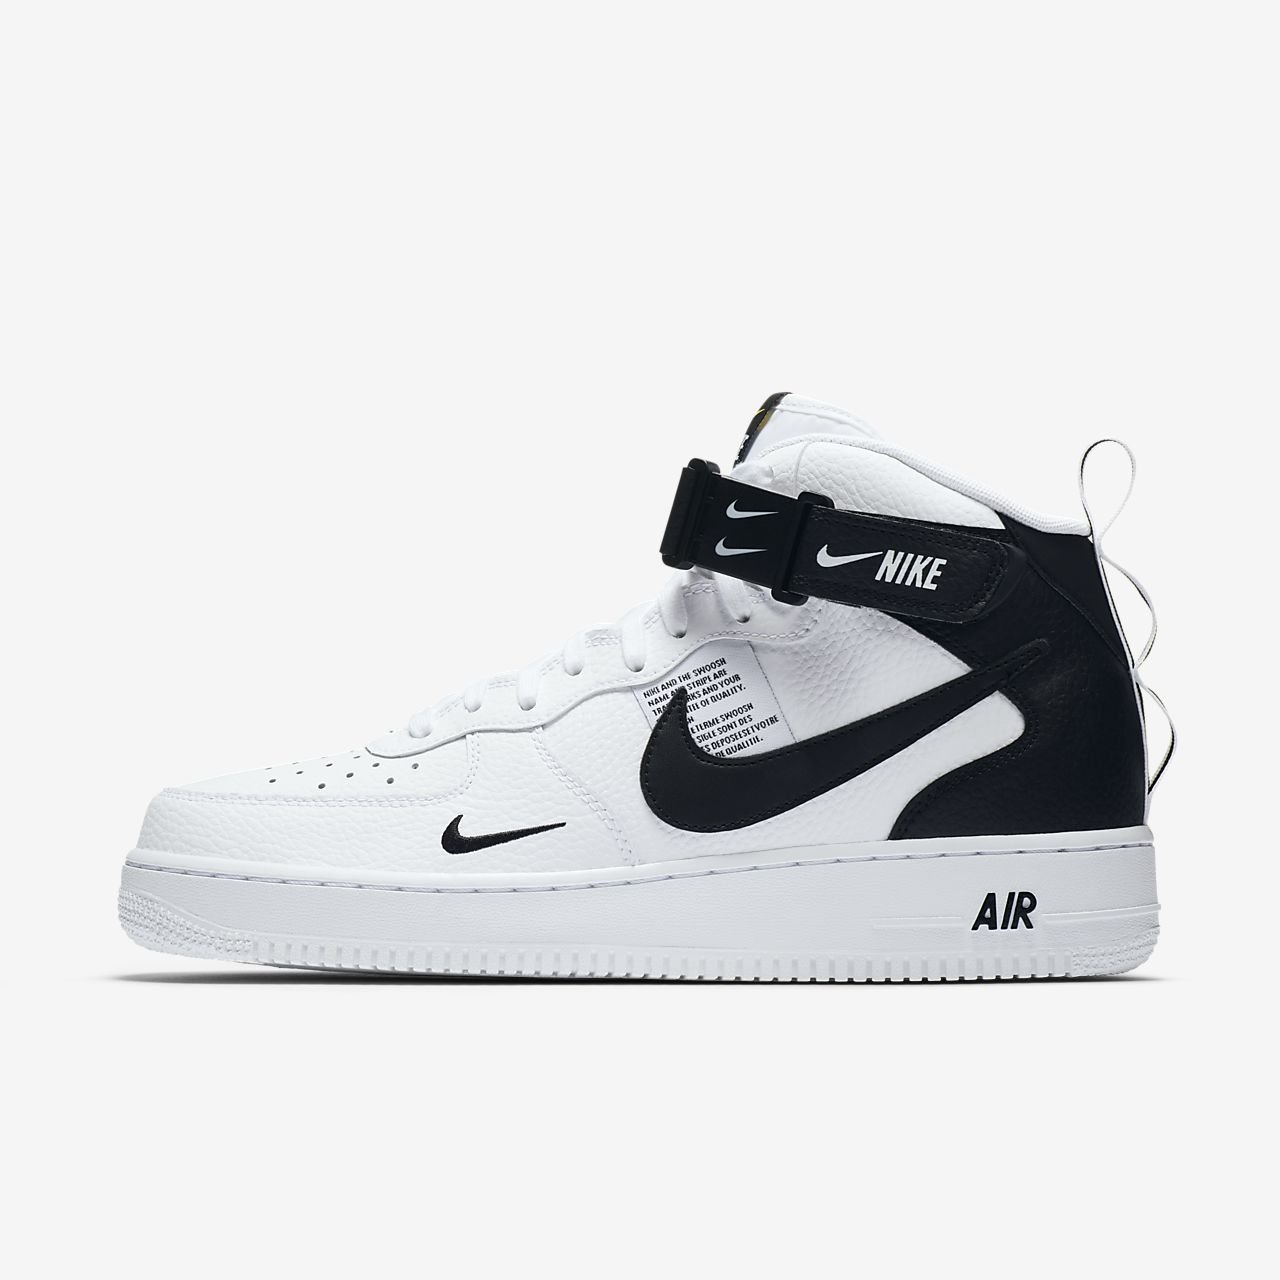 bc2c89a923287c Nike Air Force 1 07 Mid LV8 Men s Shoe. Nike.com CA